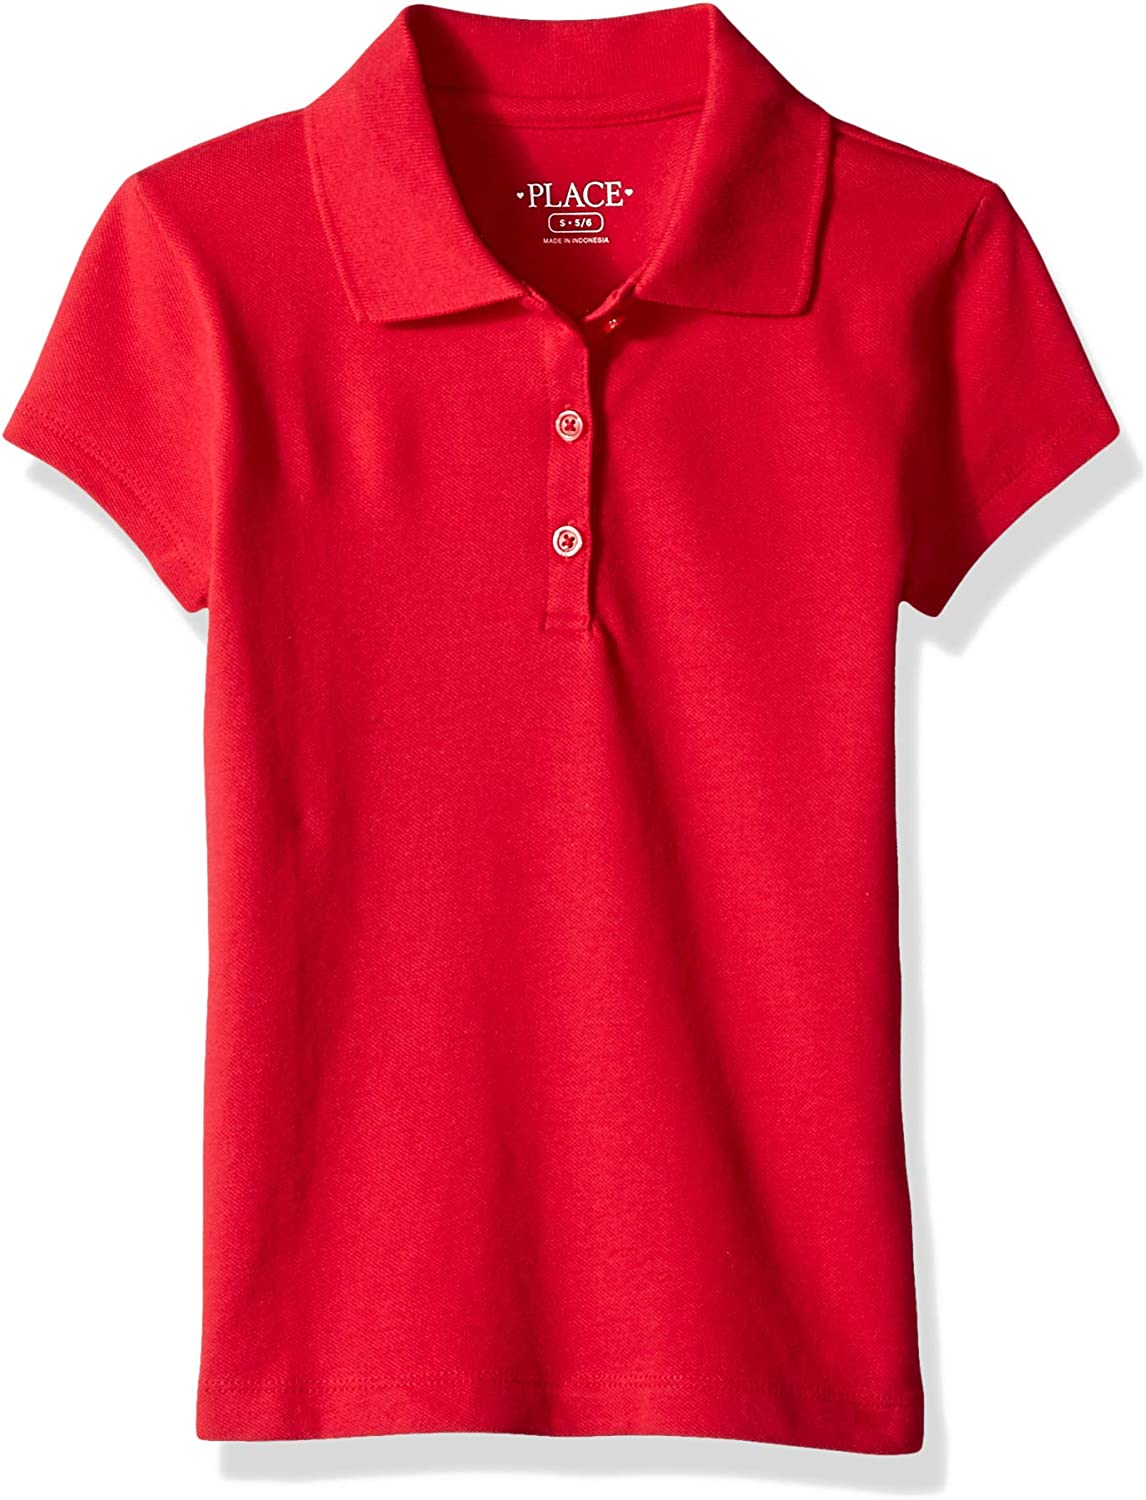 The Childrens Place Girls Uniform Long Sleeve Ruffle Pique Polo